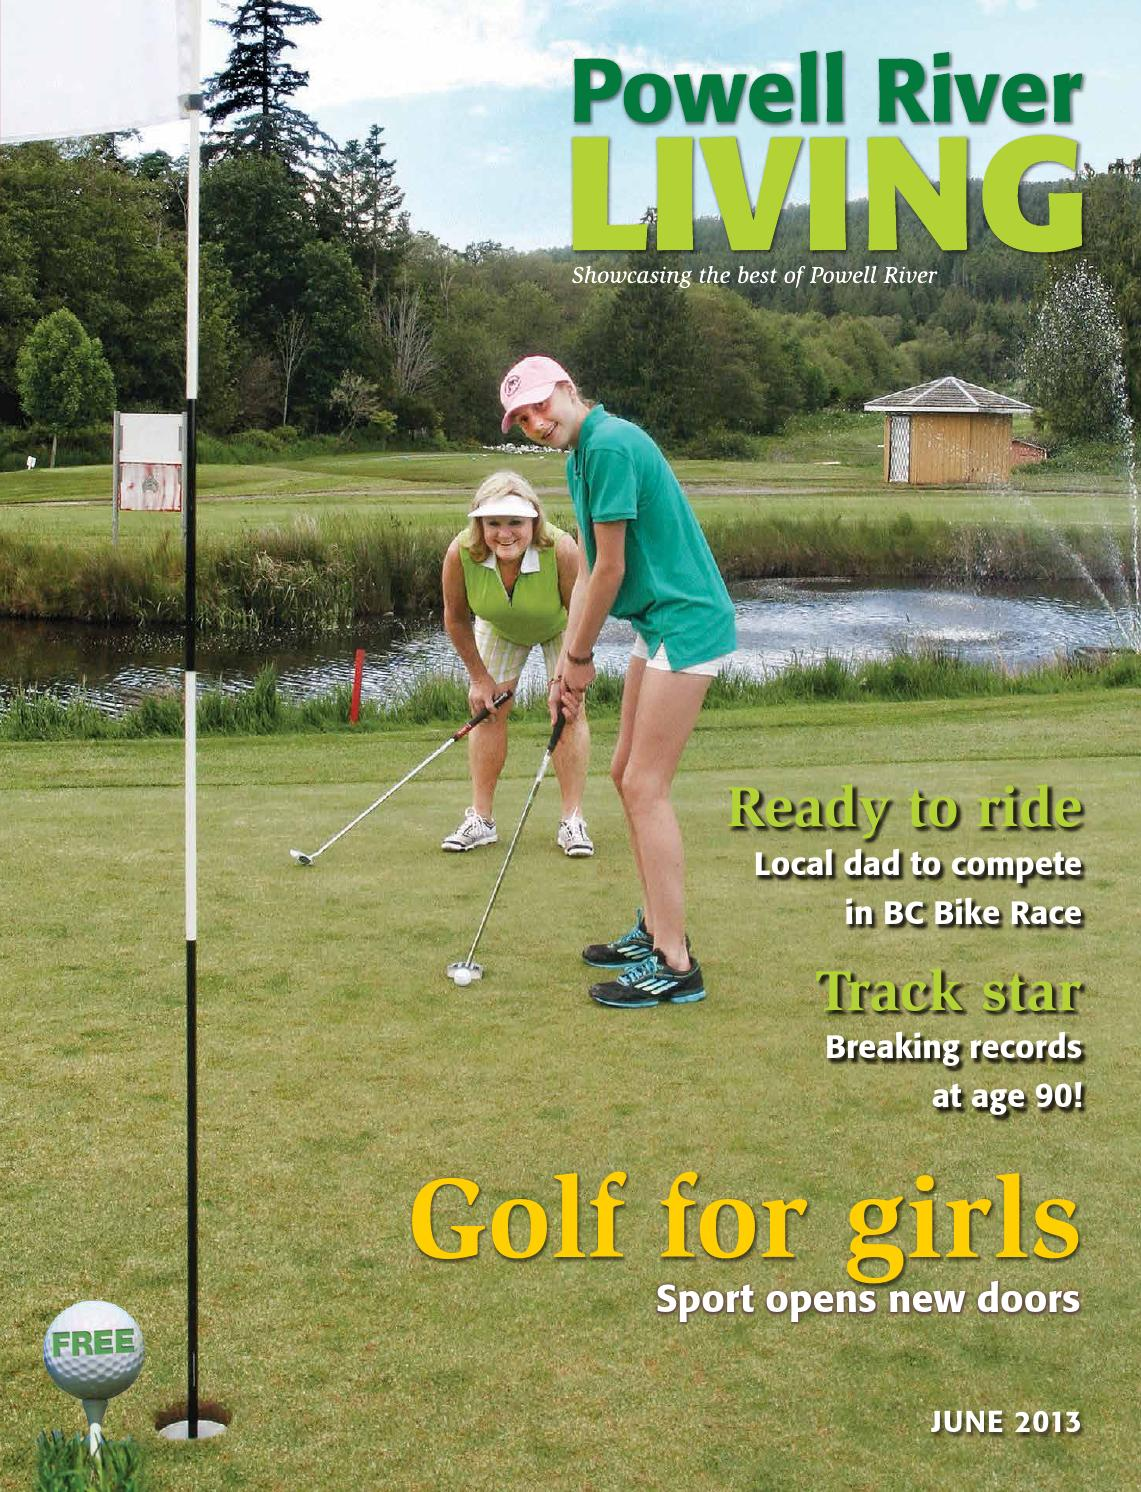 Powell River Living June 2013 by Sean Percy - issuu